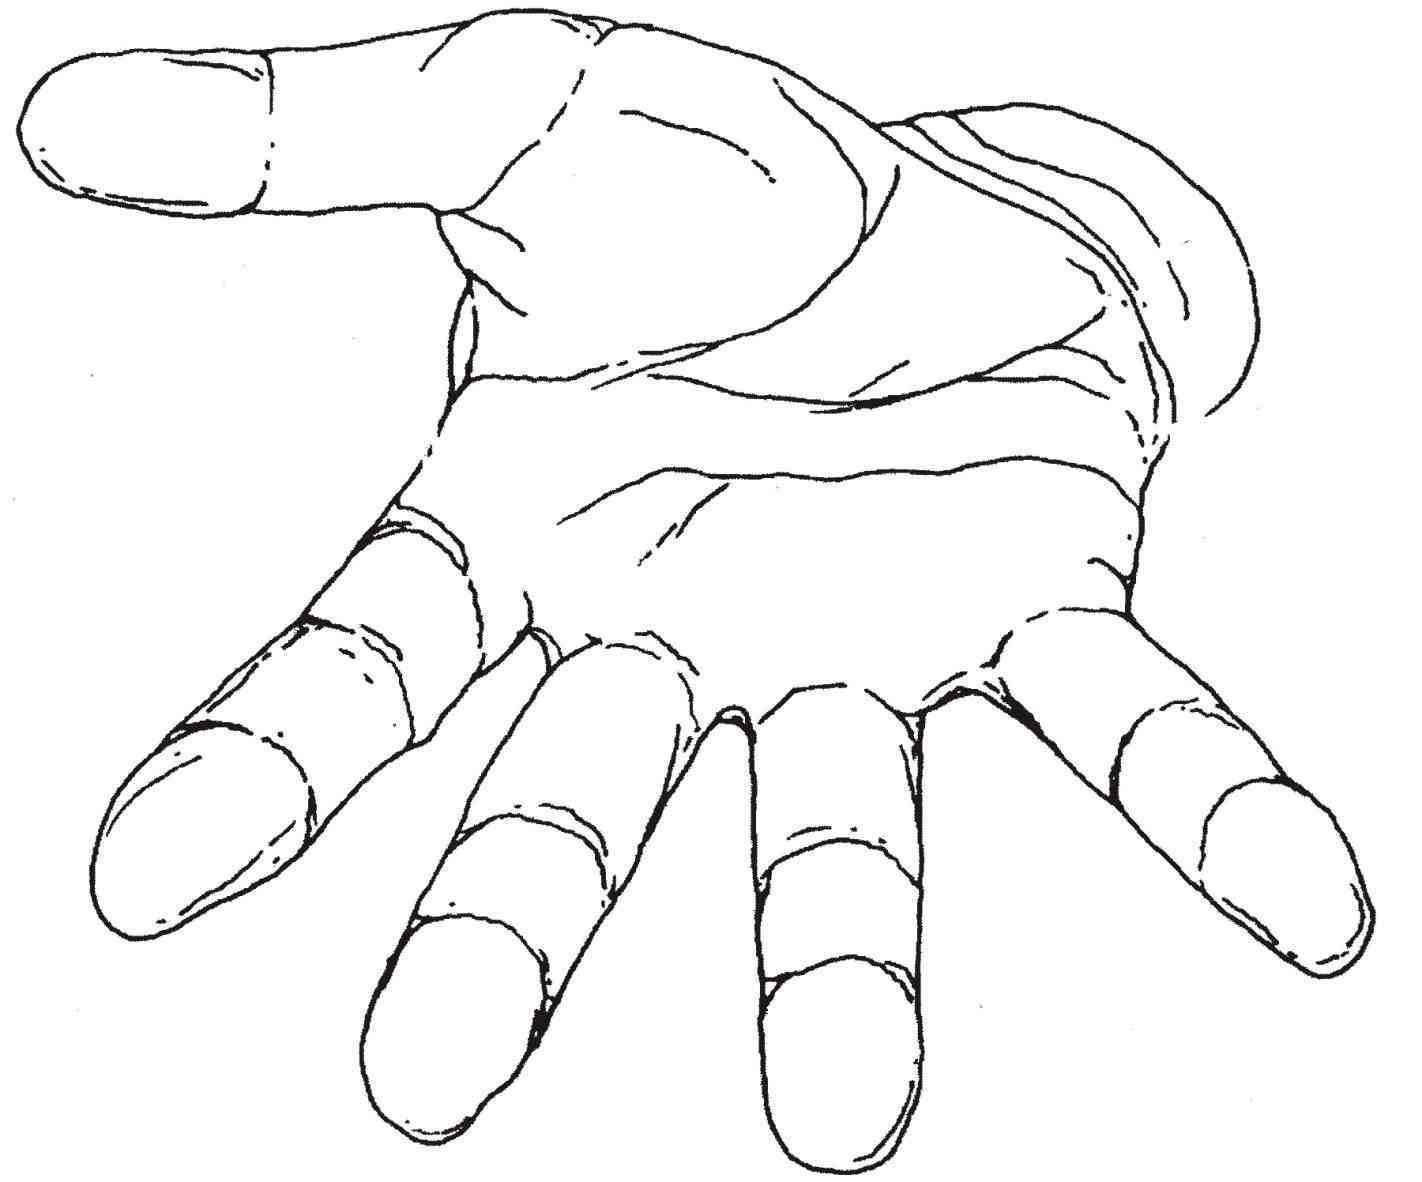 1422x1182 Drawings Of Hands Reaching Out